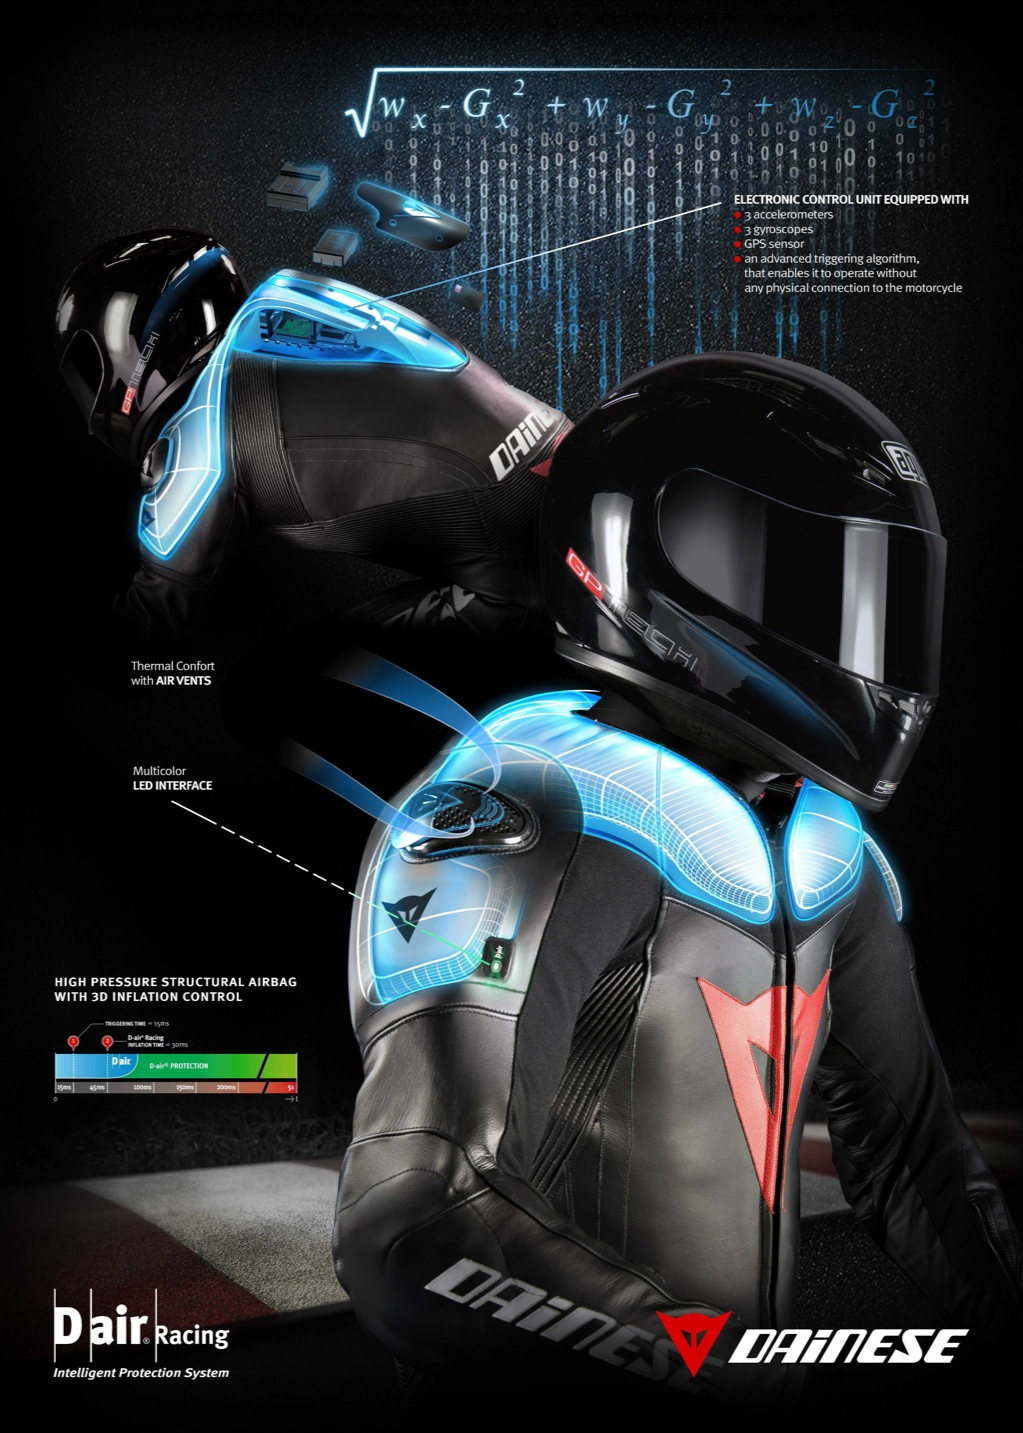 dainese d air racing suit airbag system supports google. Black Bedroom Furniture Sets. Home Design Ideas